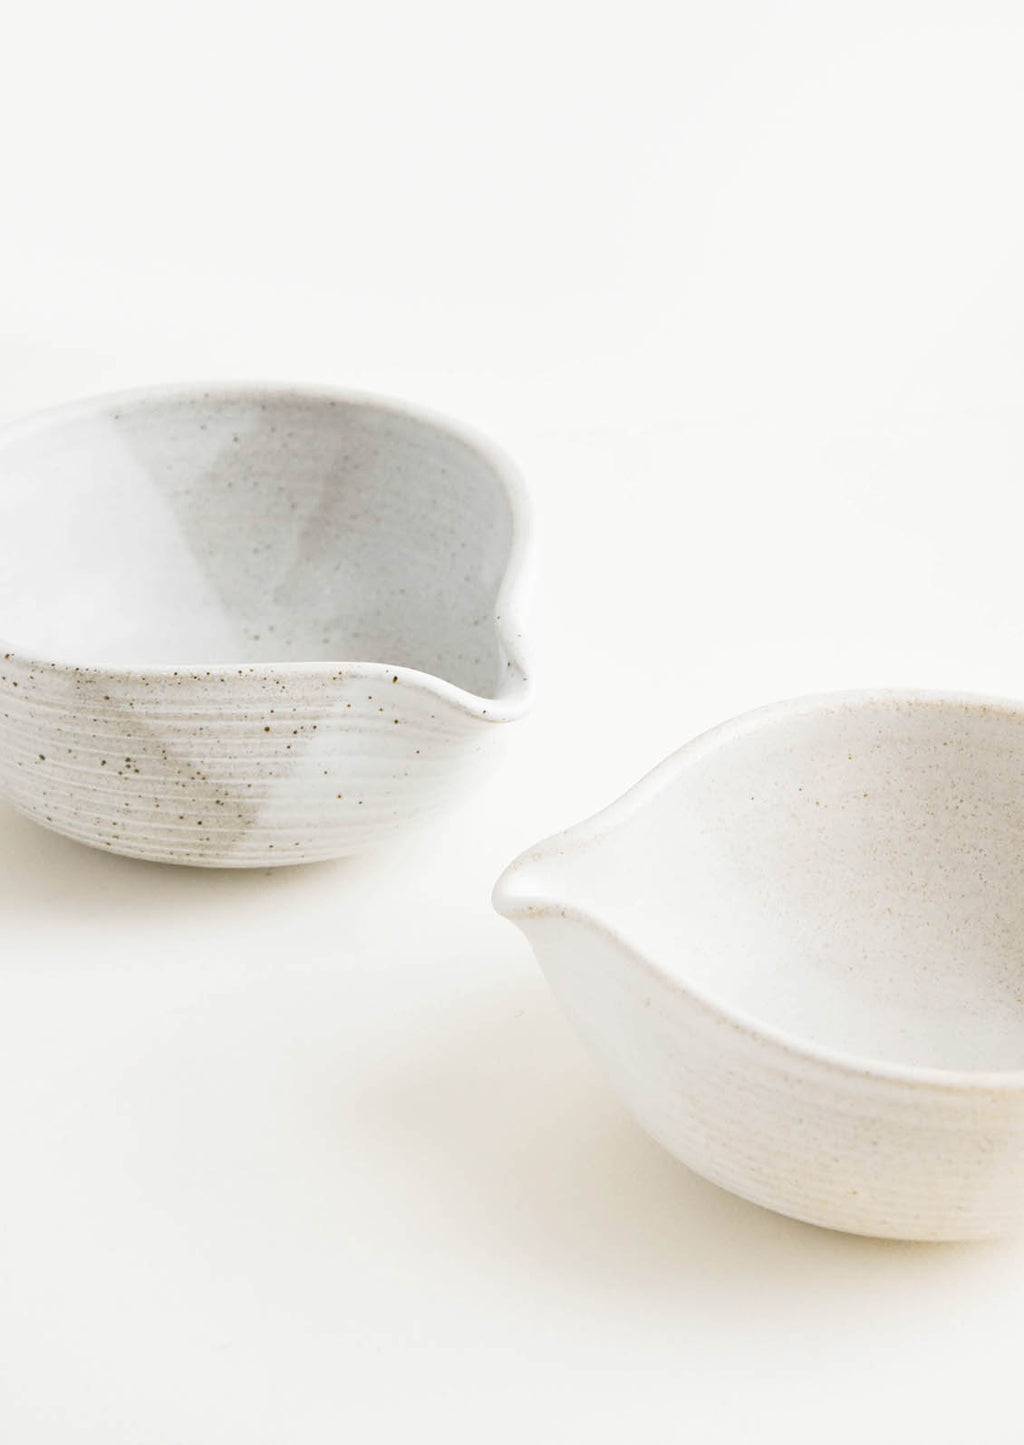 1: Two ceramic spouted bowls in different shades of white.